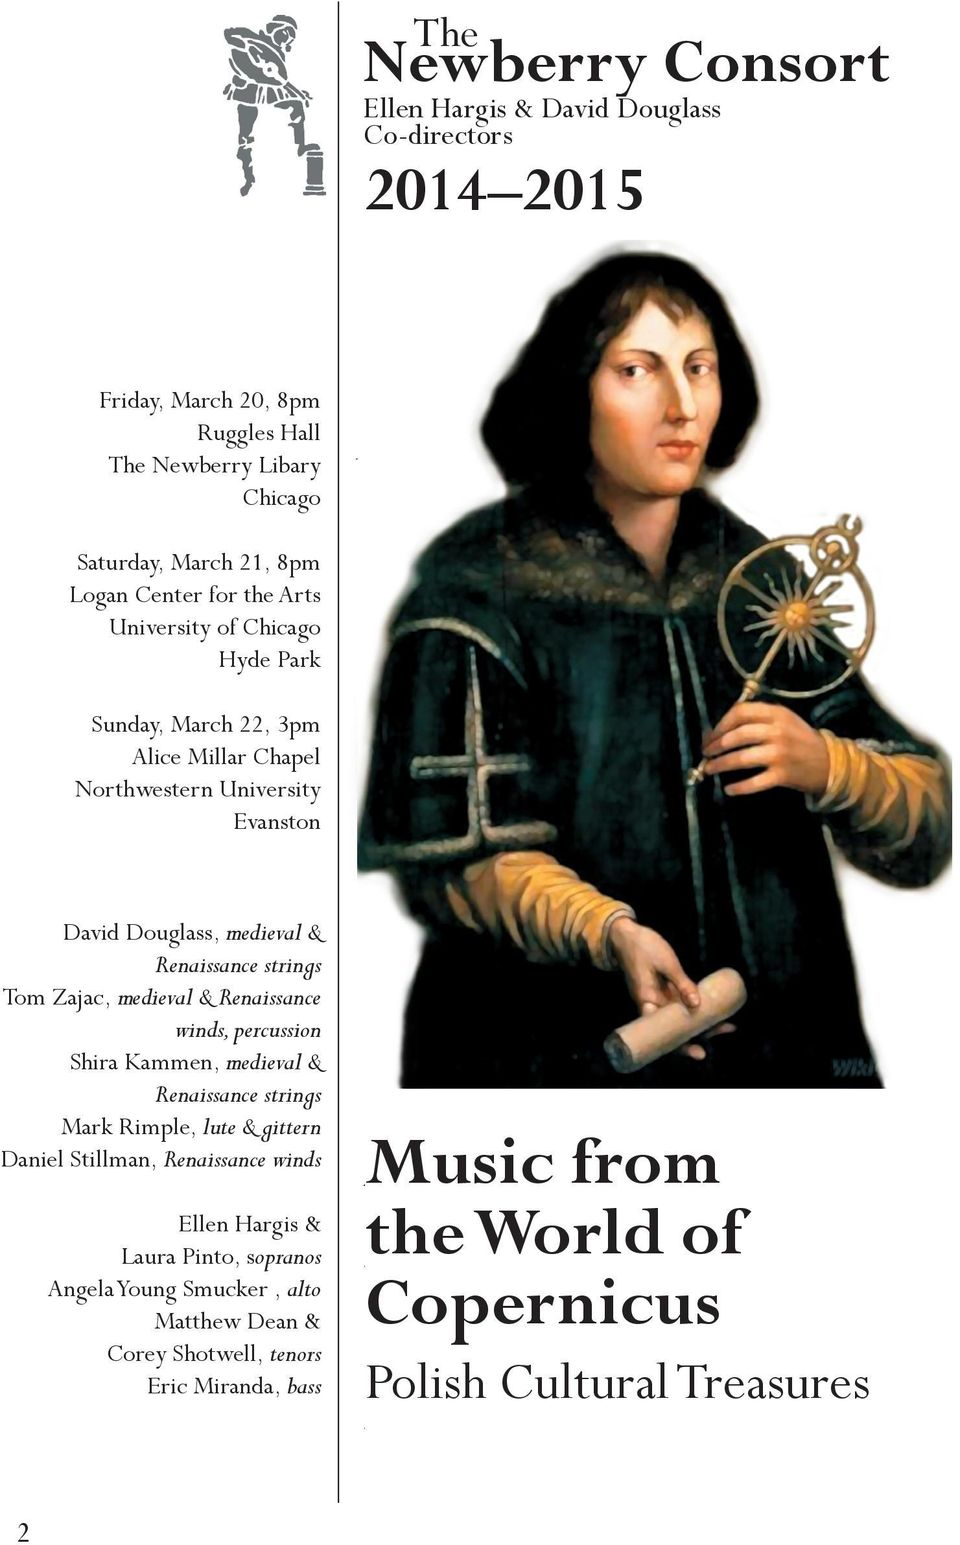 January 27, 3pm Sunday, March Lutkin 22, Hall 3pm Northwestern Alice Millar University Chapel Northwestern University Evanston Evanston David Douglass, medieval & Renaissance strings Tom Zajac,